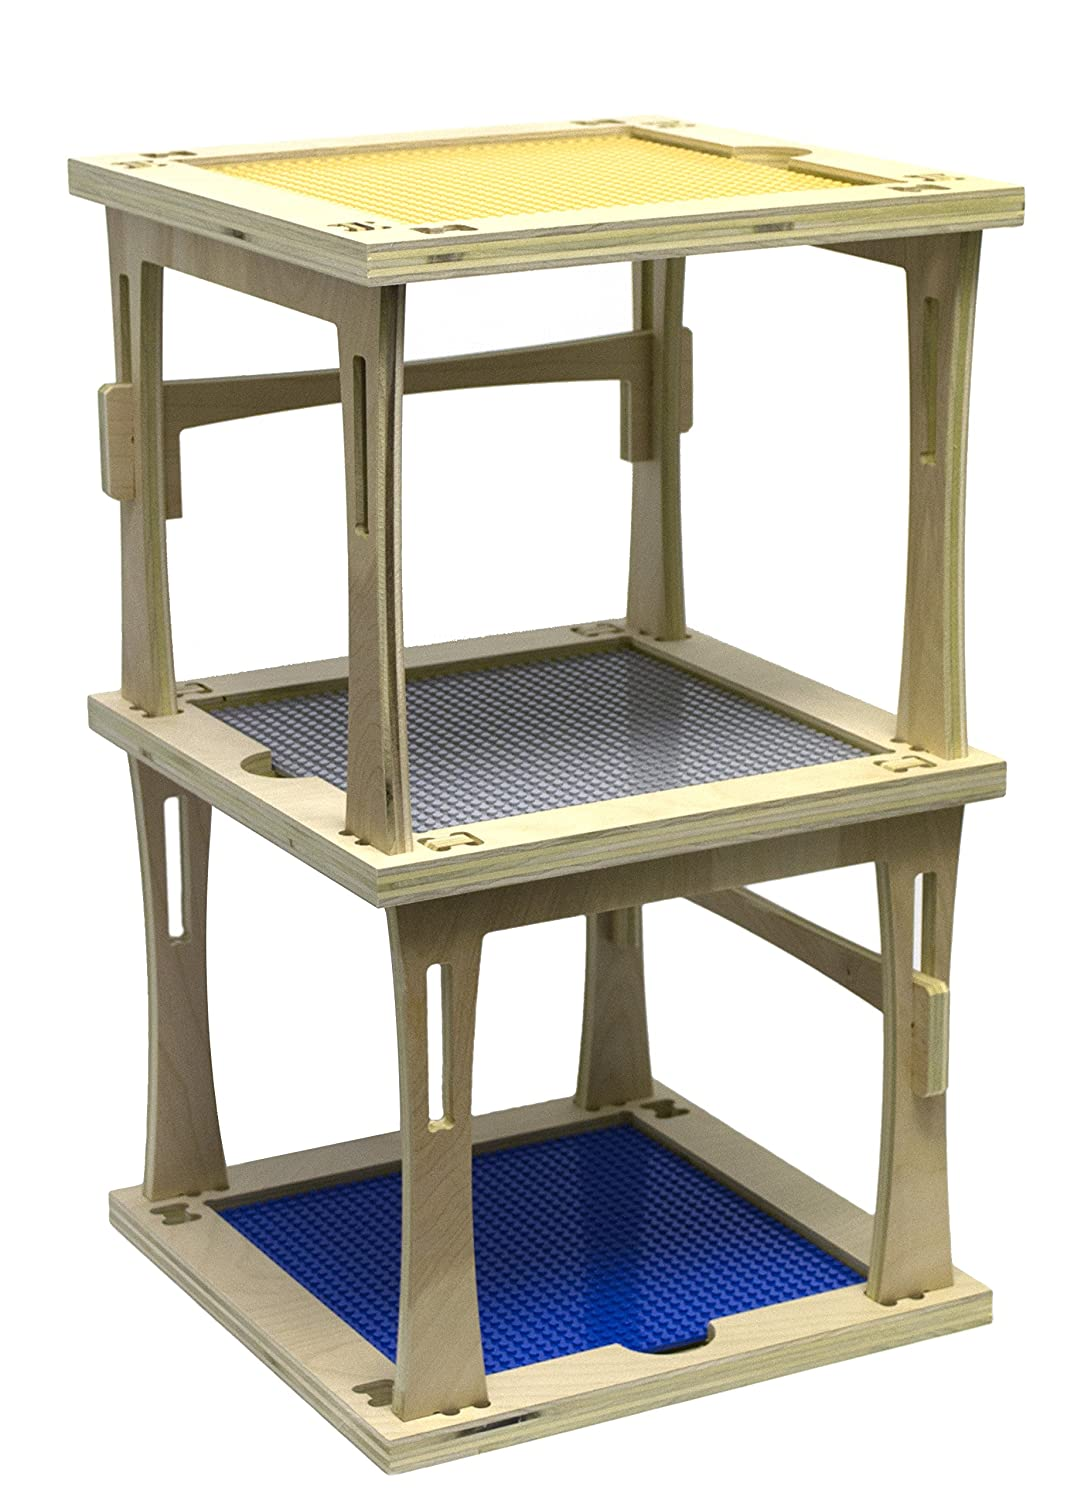 "3 Level Stackable Wooden Tower für Building Bricks, 22"" Tall - Assemble Yourself, gemacht bei die uns - Compatible mit alle Major Brands - Comes mit 3 10""X10"" Thick Compatible Basis Plates"